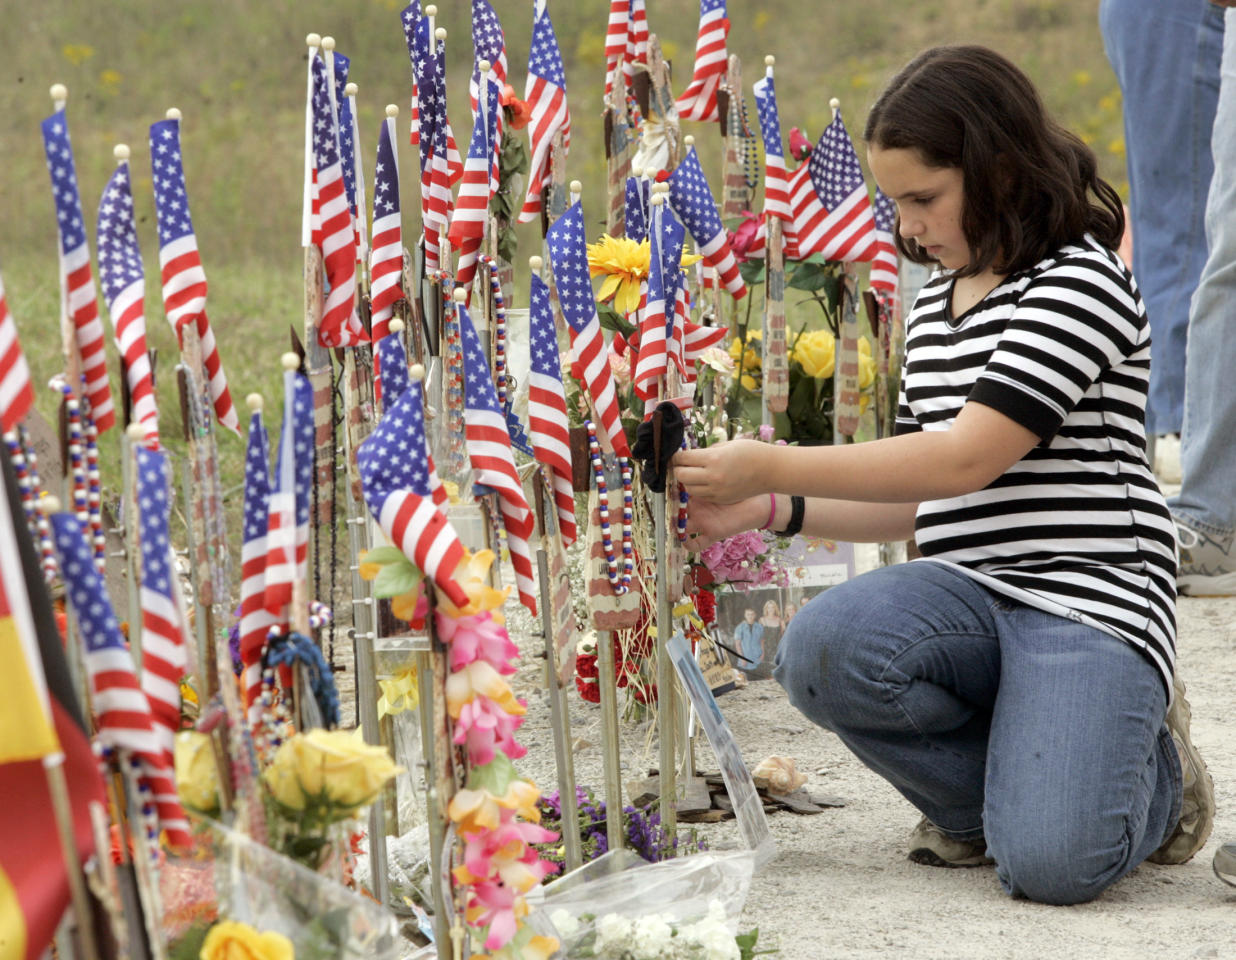 Jody Greene, 11, of Greenwhich, Connecticut, adjusts a ribbon on a memorial for her father Donald Greene at the Flight 93 Temporary Memorial just outside Shanksville, Pennsylvania, September 10, 2006. Jody's father was one of the 40 people who died on board Flight 93. (REUTERS/Jason Cohn)